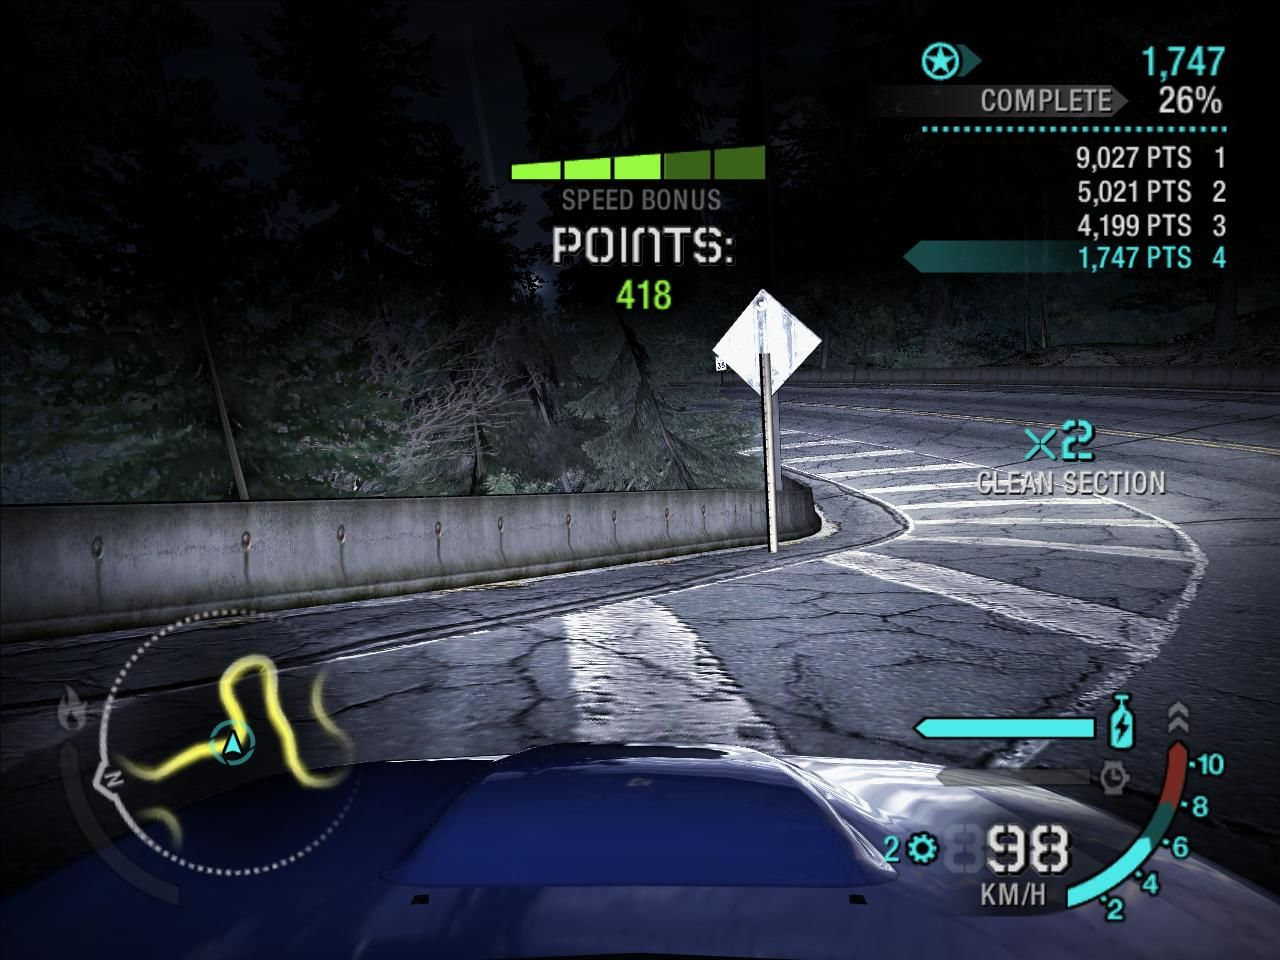 Need for Speed: Carbon Windows Drift races are back thankfully! and they are always fun!